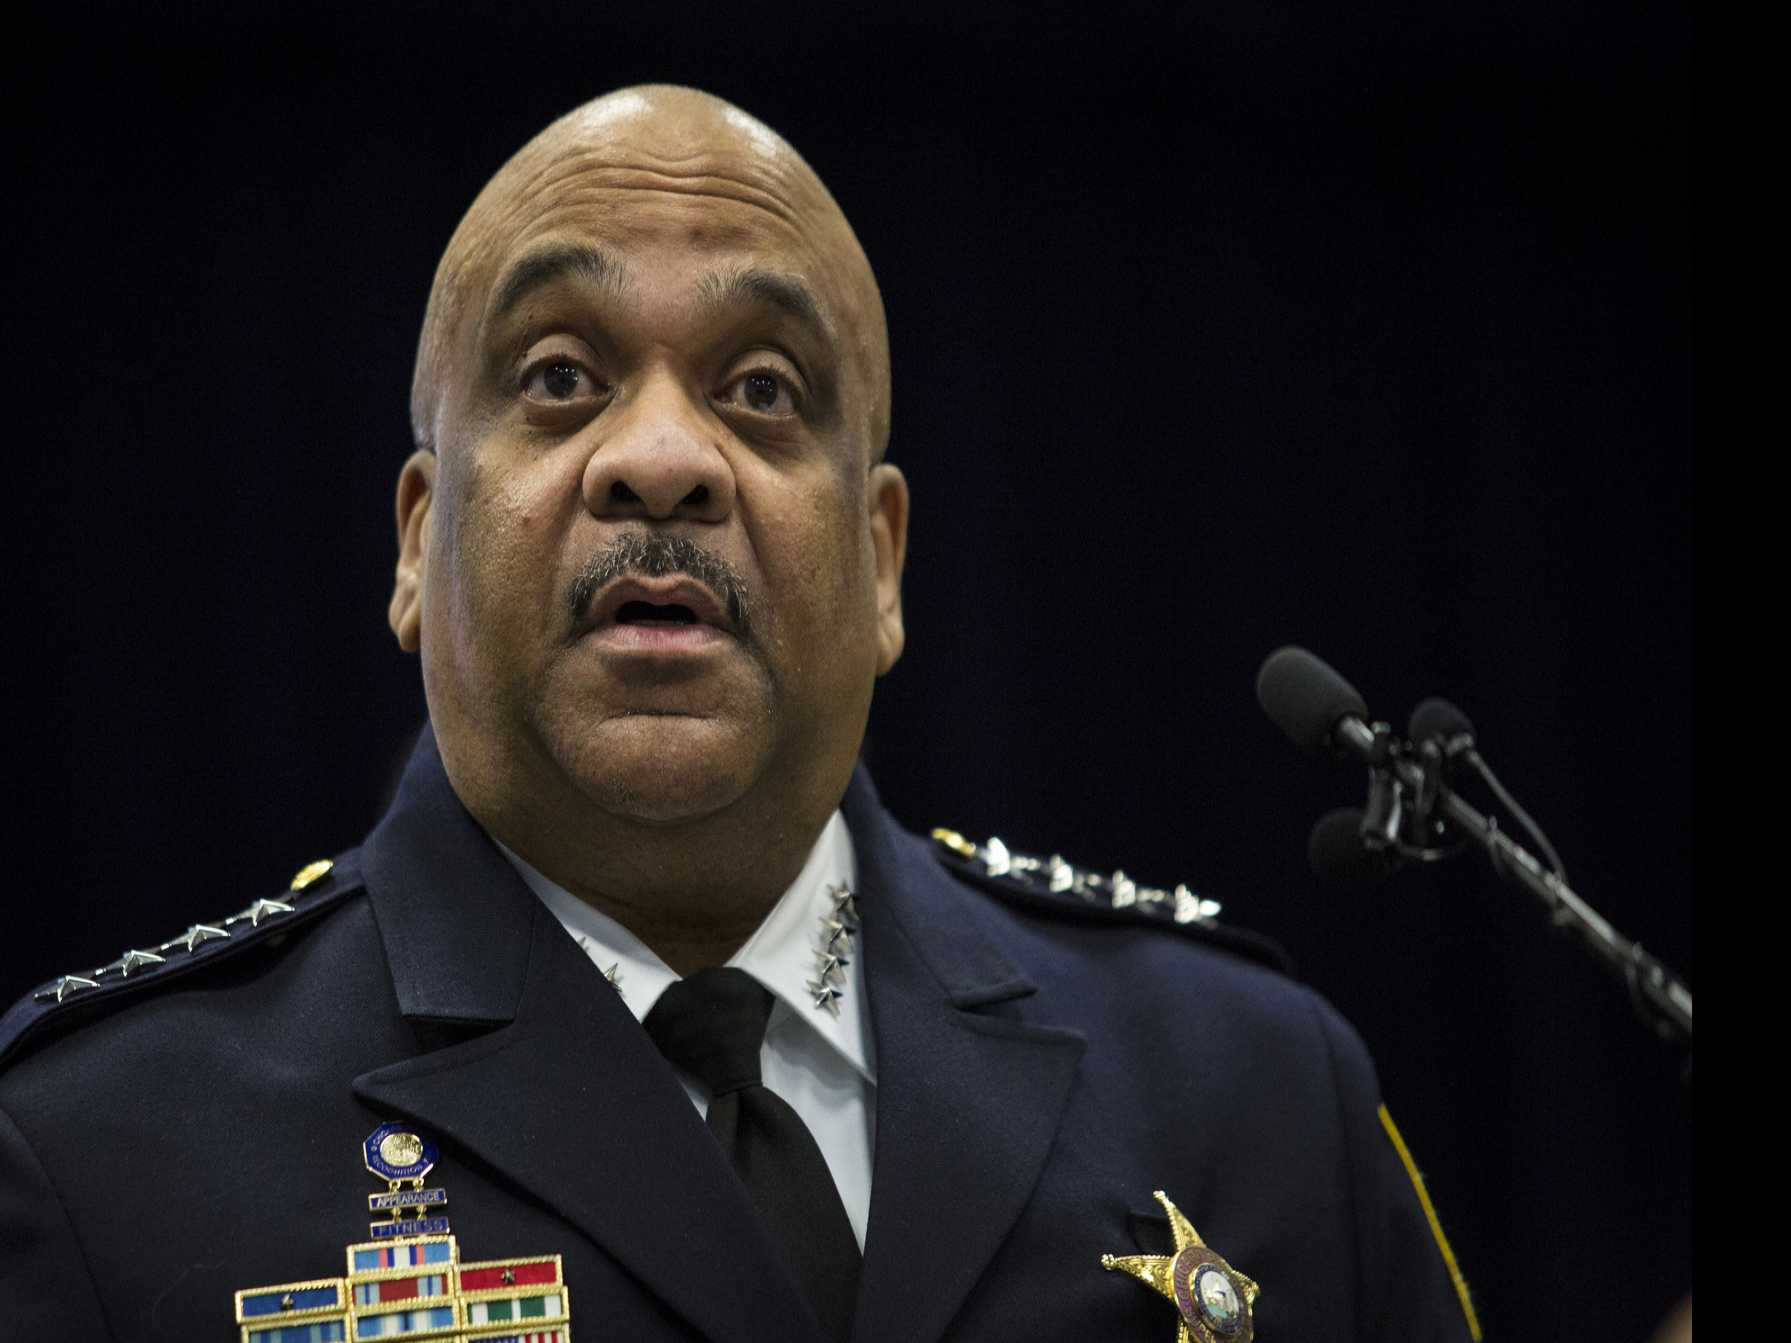 Chicago Police Chief Angry Over Alleged Smollett Hoax